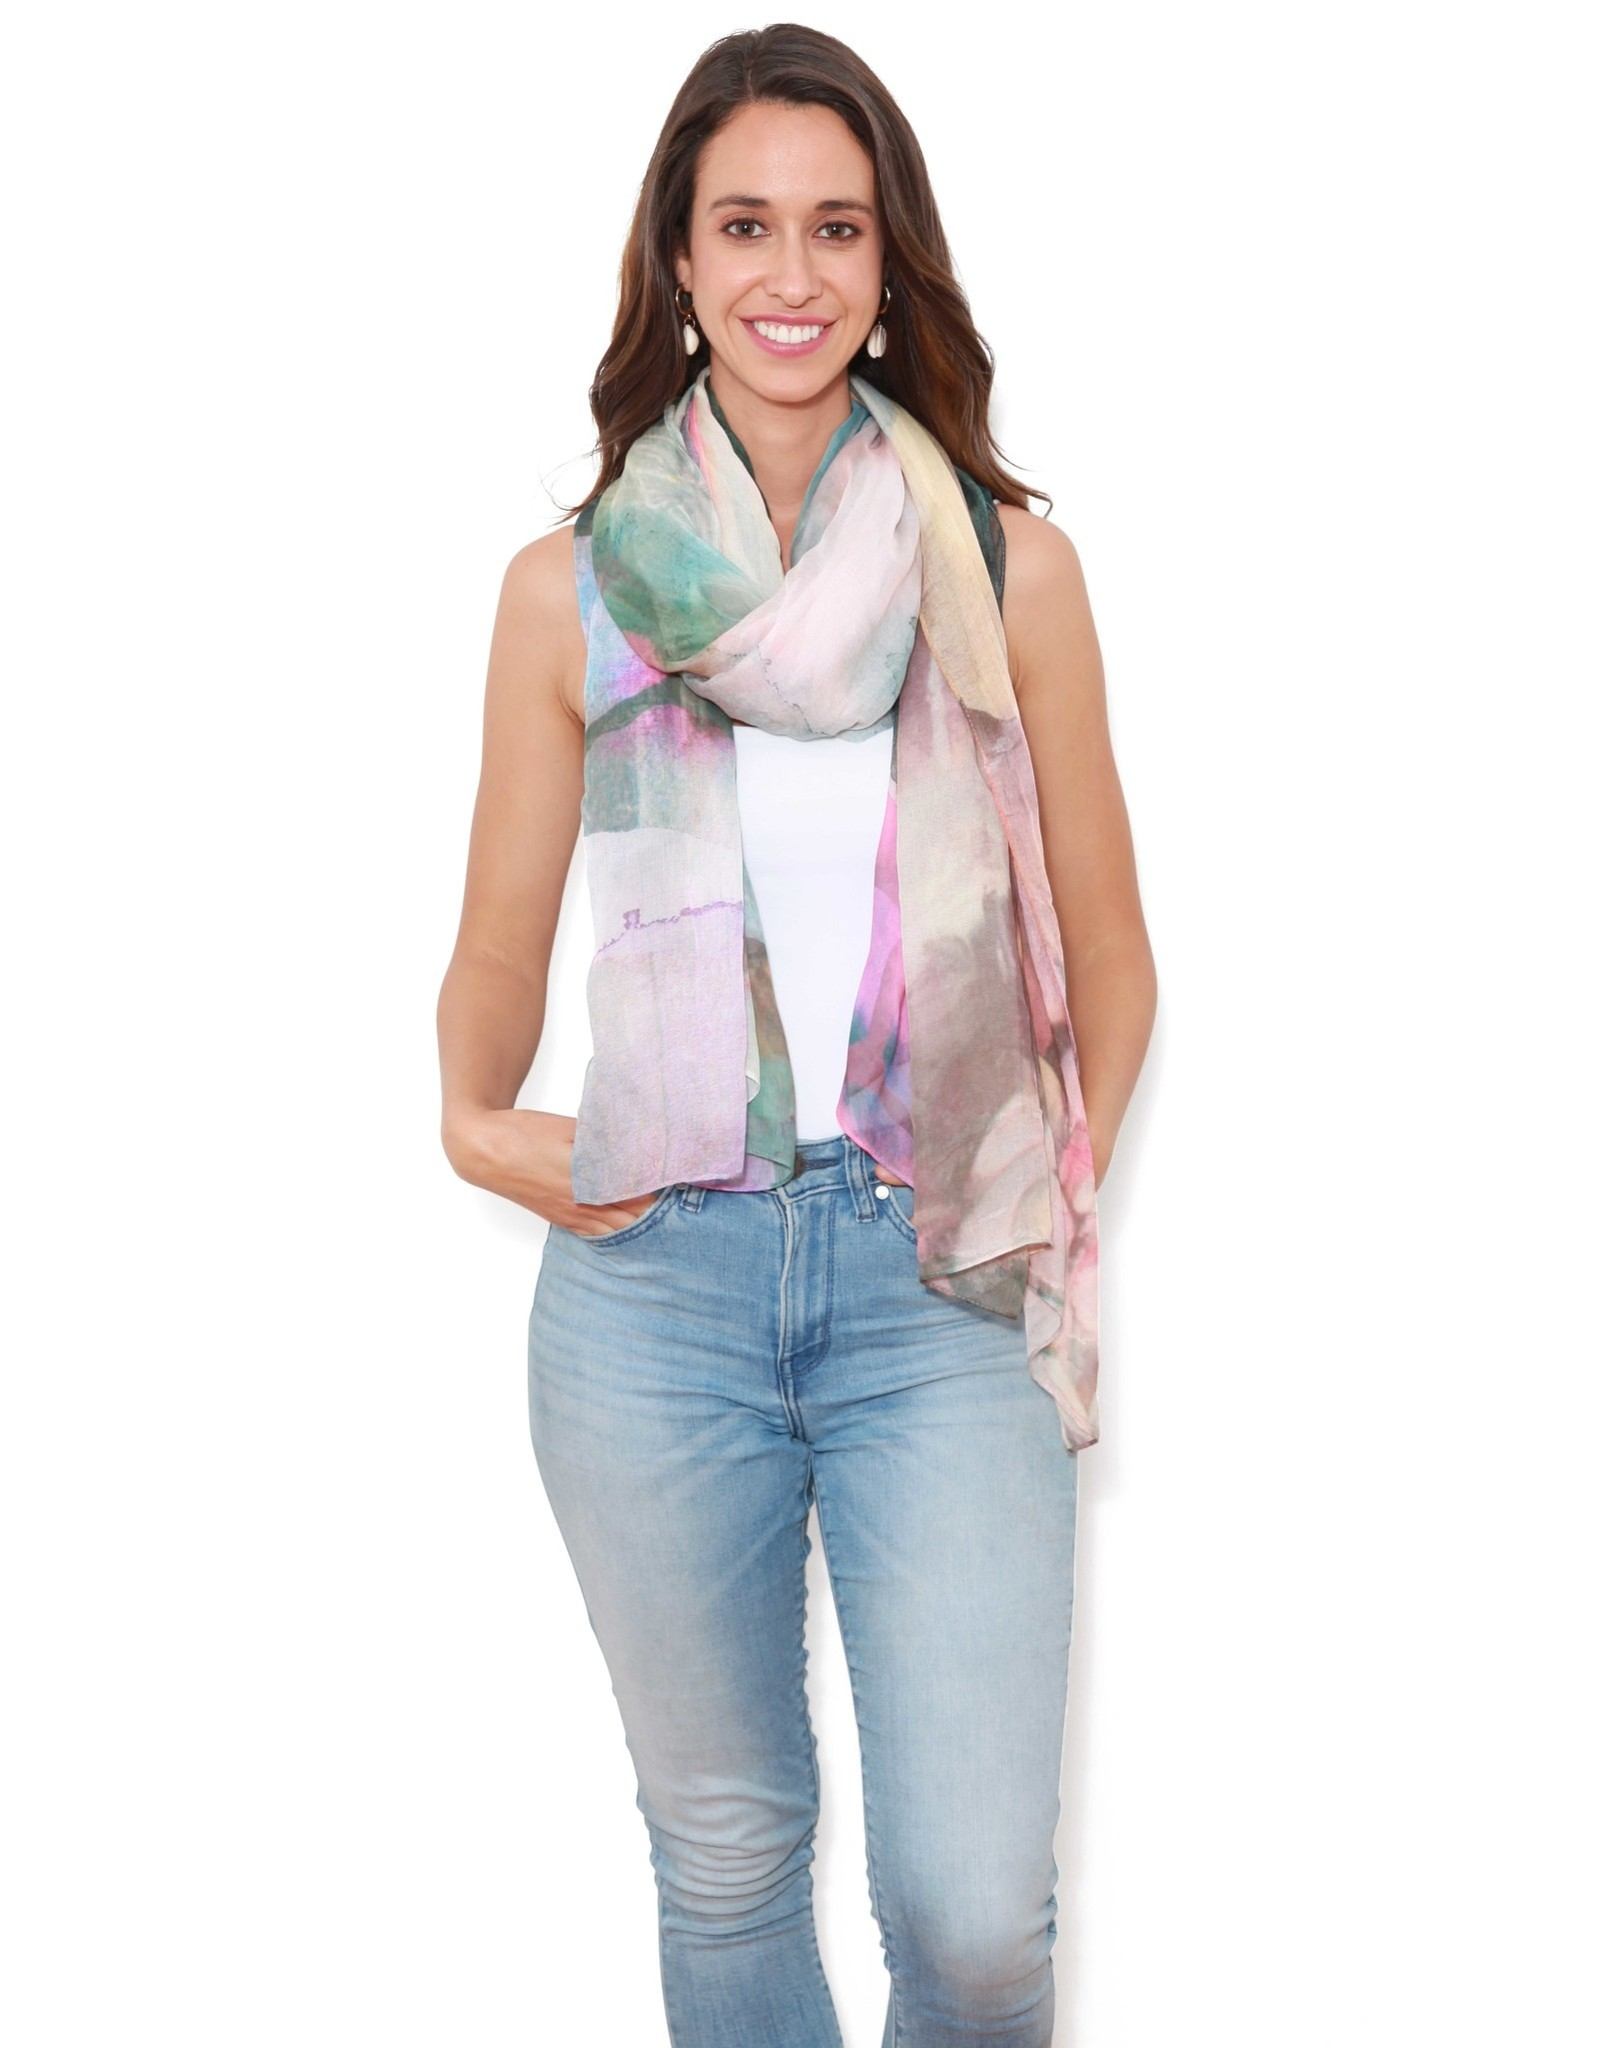 The Artists Label Effi Briest Large Scarf